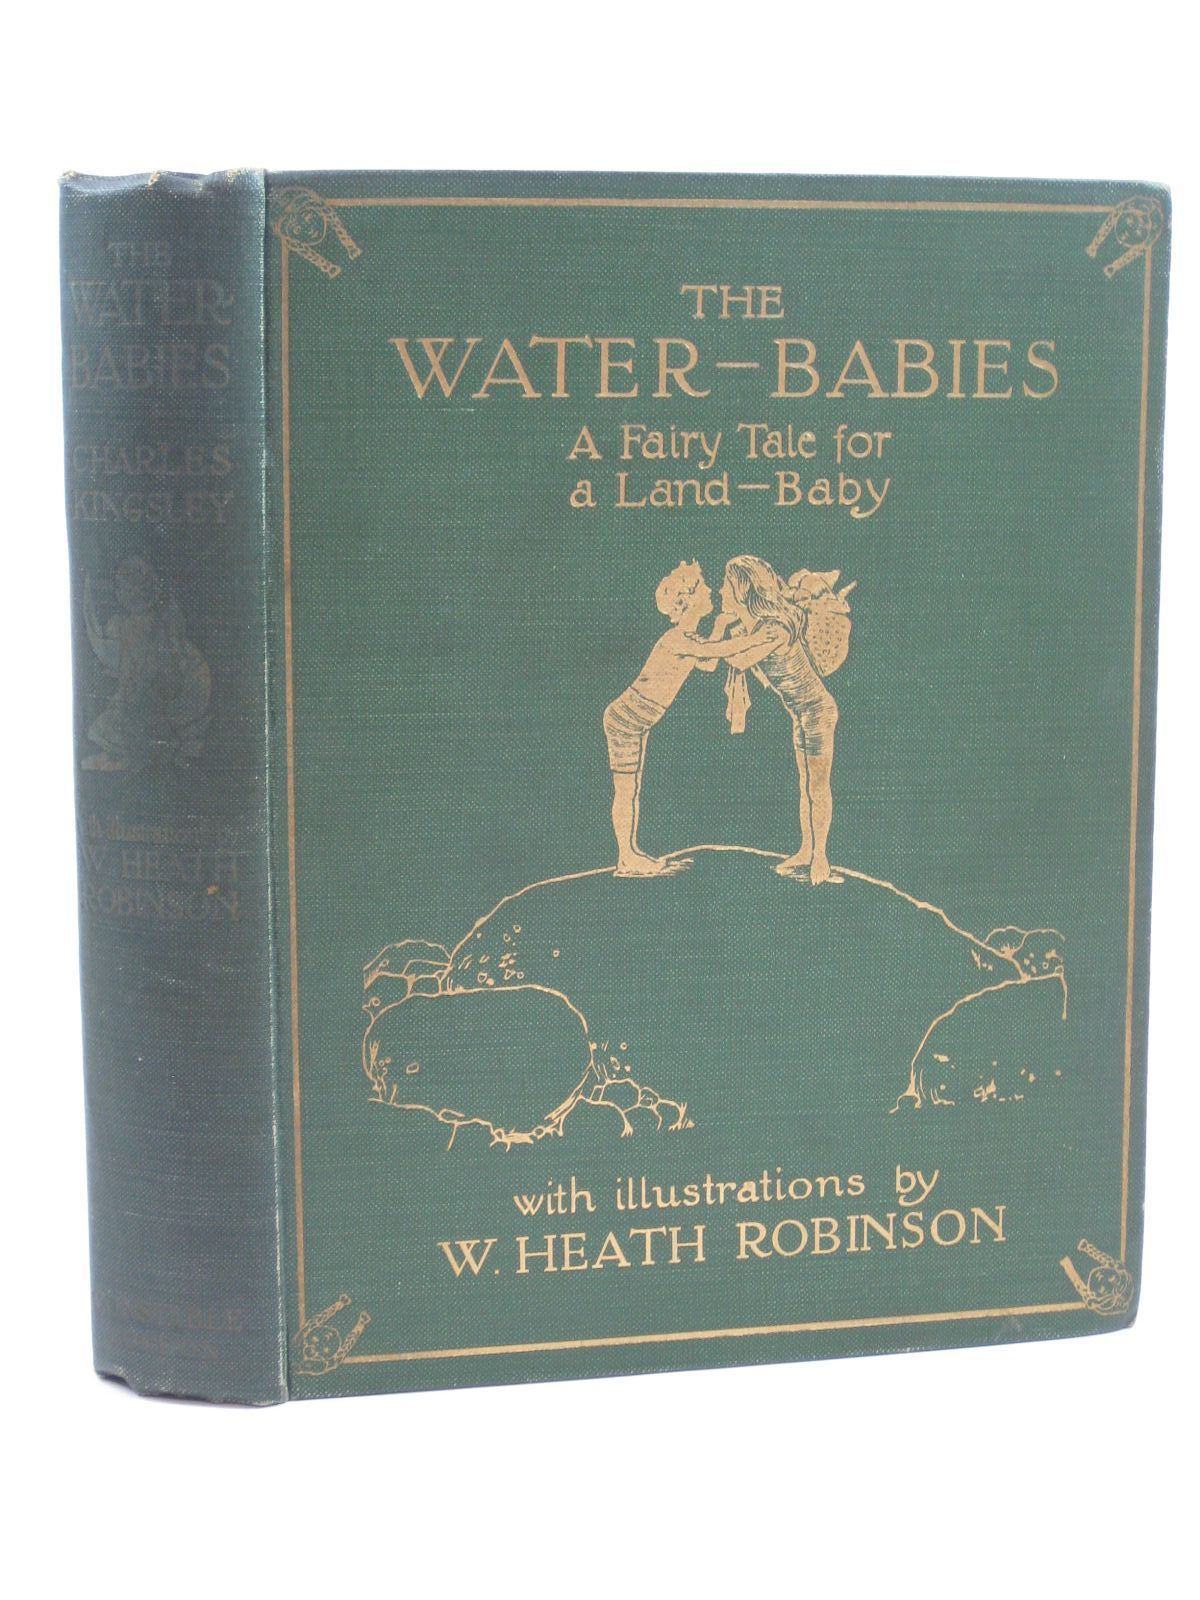 Photo of THE WATER-BABIES written by Kingsley, Charles illustrated by Robinson, W. Heath published by Constable & Co. Ltd. (STOCK CODE: 1406768)  for sale by Stella & Rose's Books